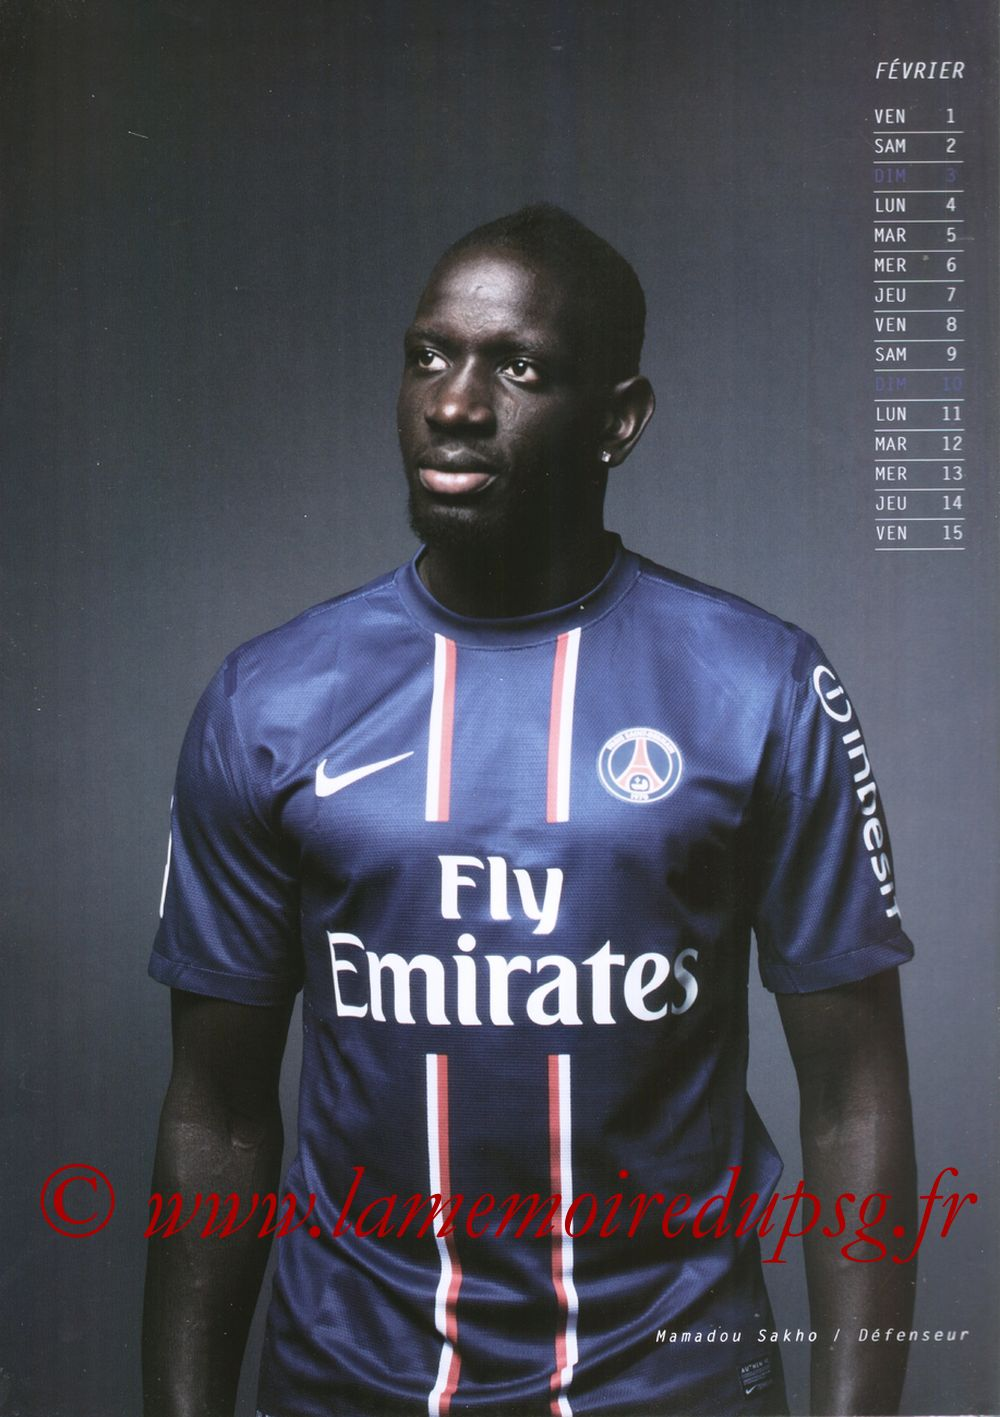 Calendrier PSG 2013 - Page 03 - Mamadou SAKHO